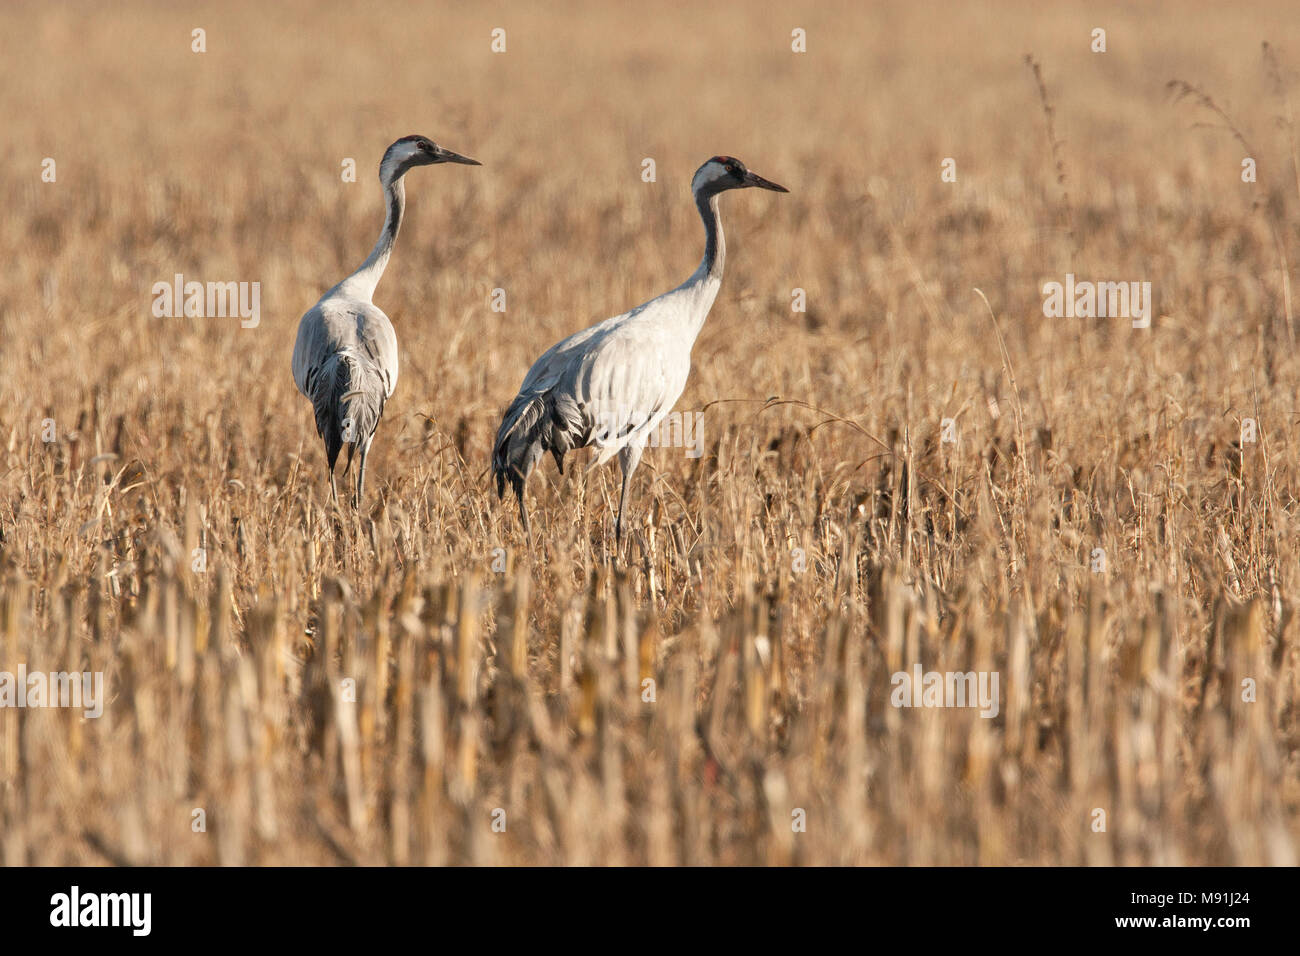 Kraanvogels tijdens de najaarstrek, Common Cranes during migration - Stock Image